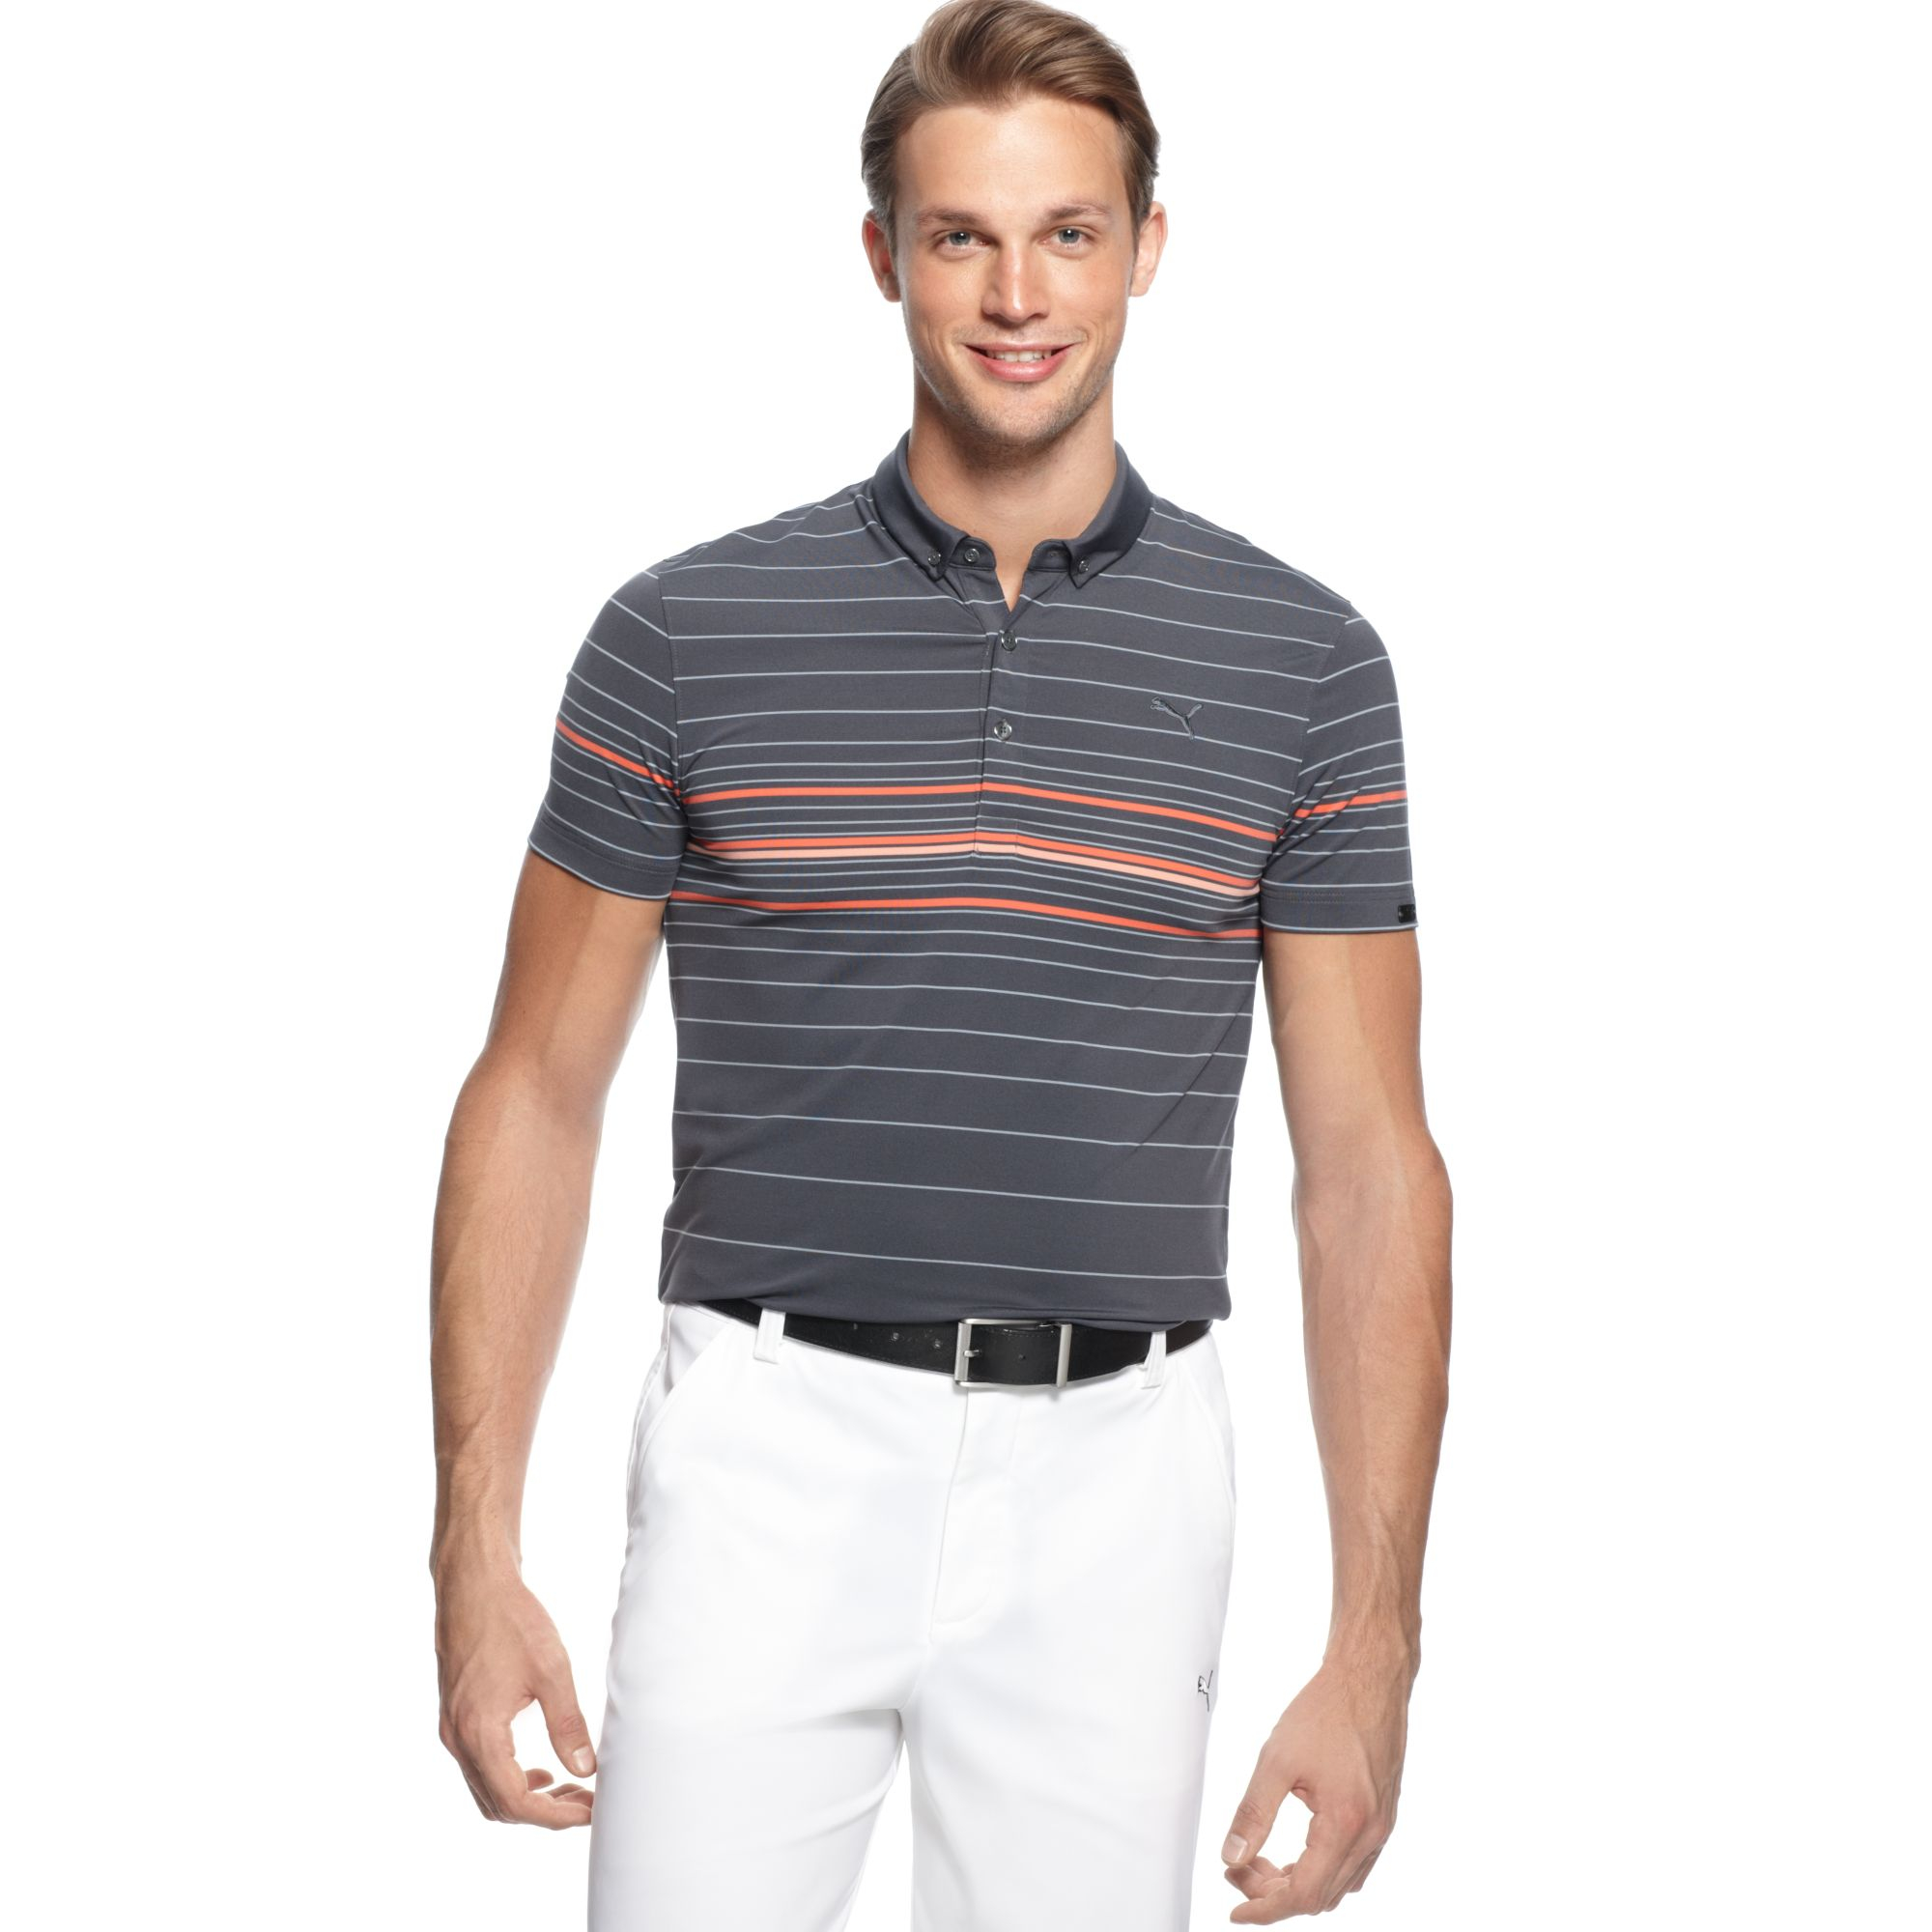 Puma sportlux slim fit drycell performance golf polo in for Slim fit golf shirts